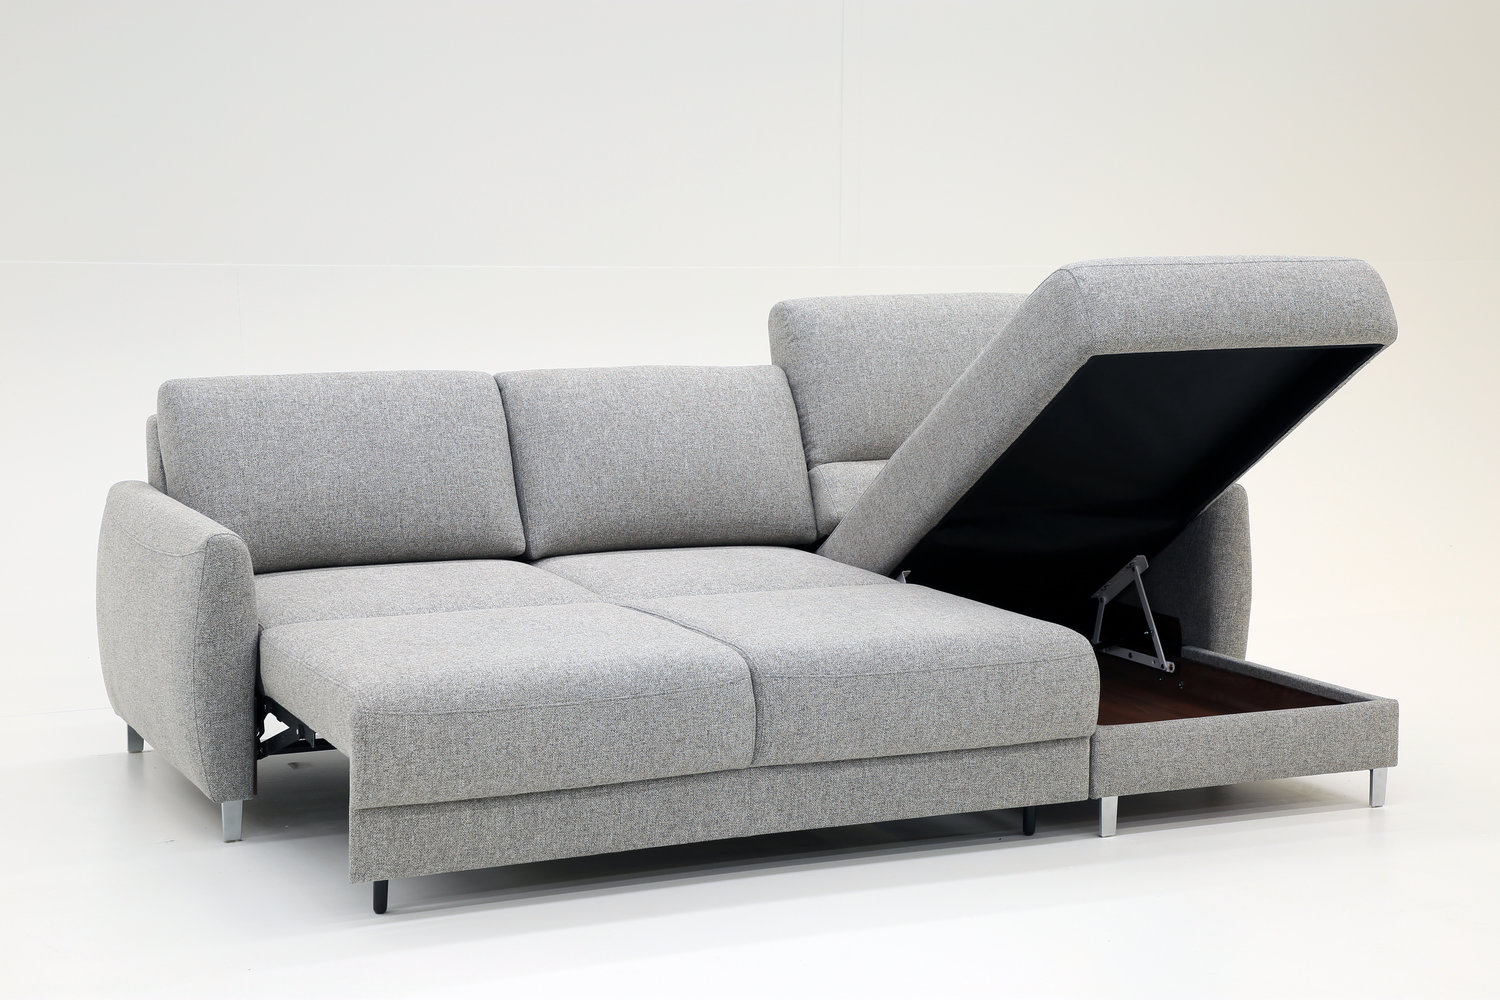 Delta Sectional Storage Sofa Bed M Collection Home